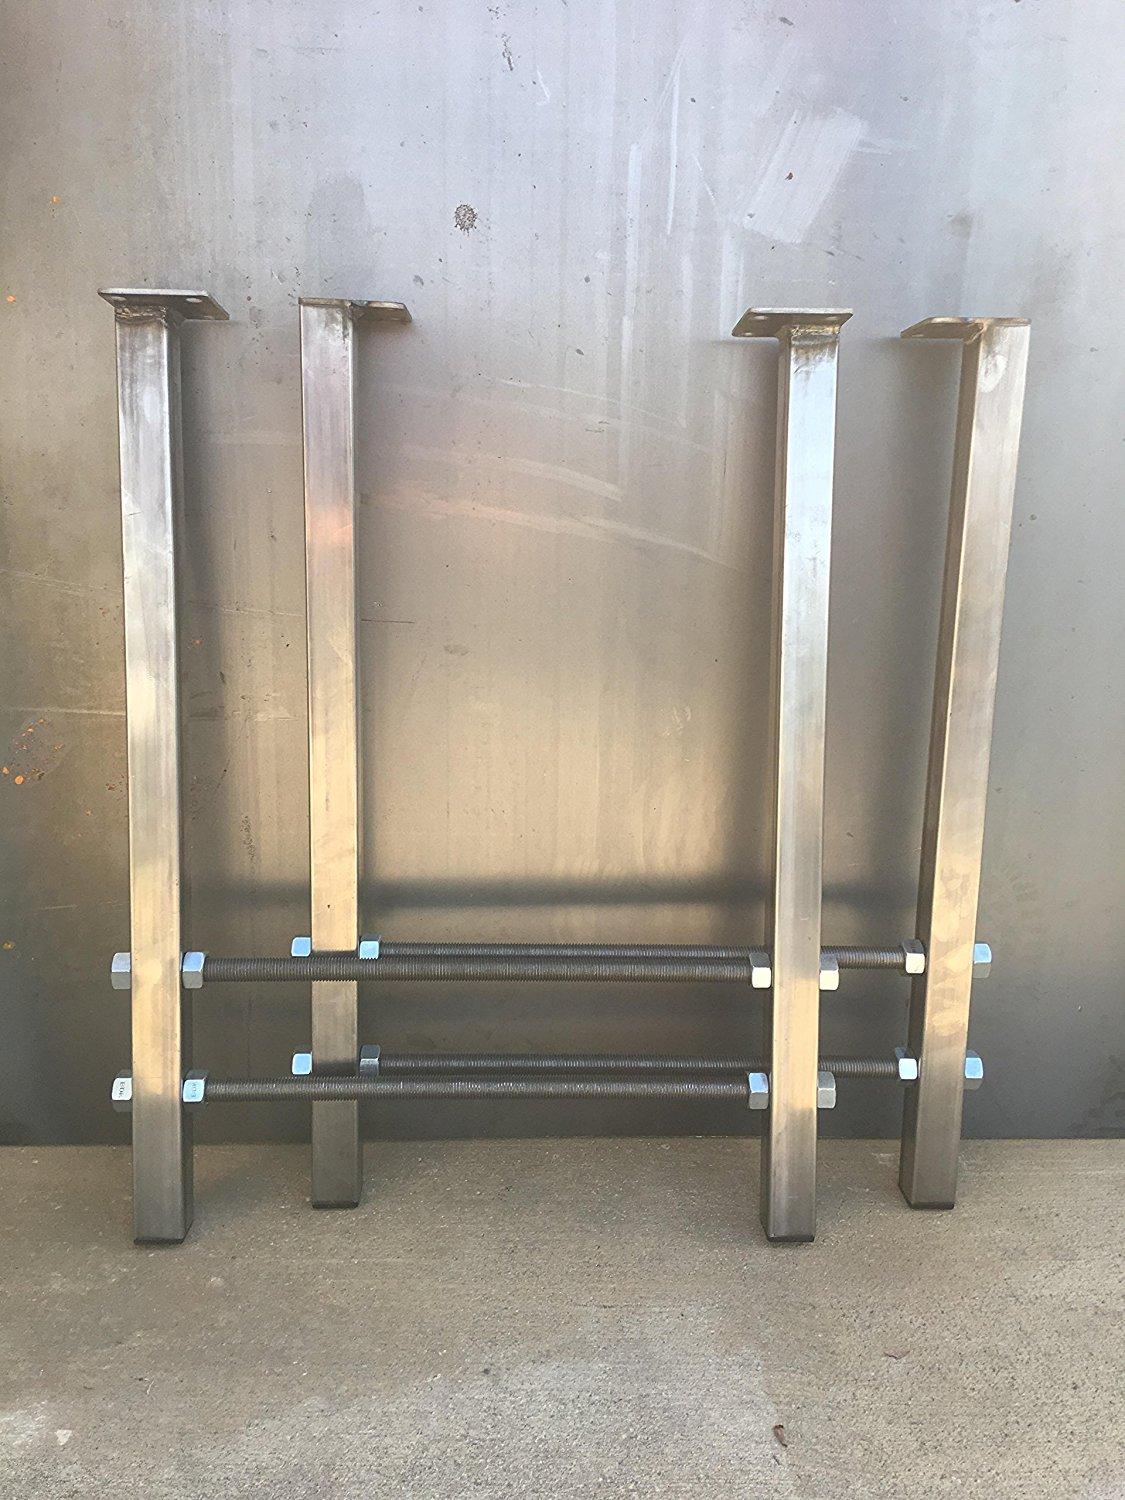 H shape metal legs, double threaded rod steel legs, metal table legs, coffee table legs. metal legs for furniture.